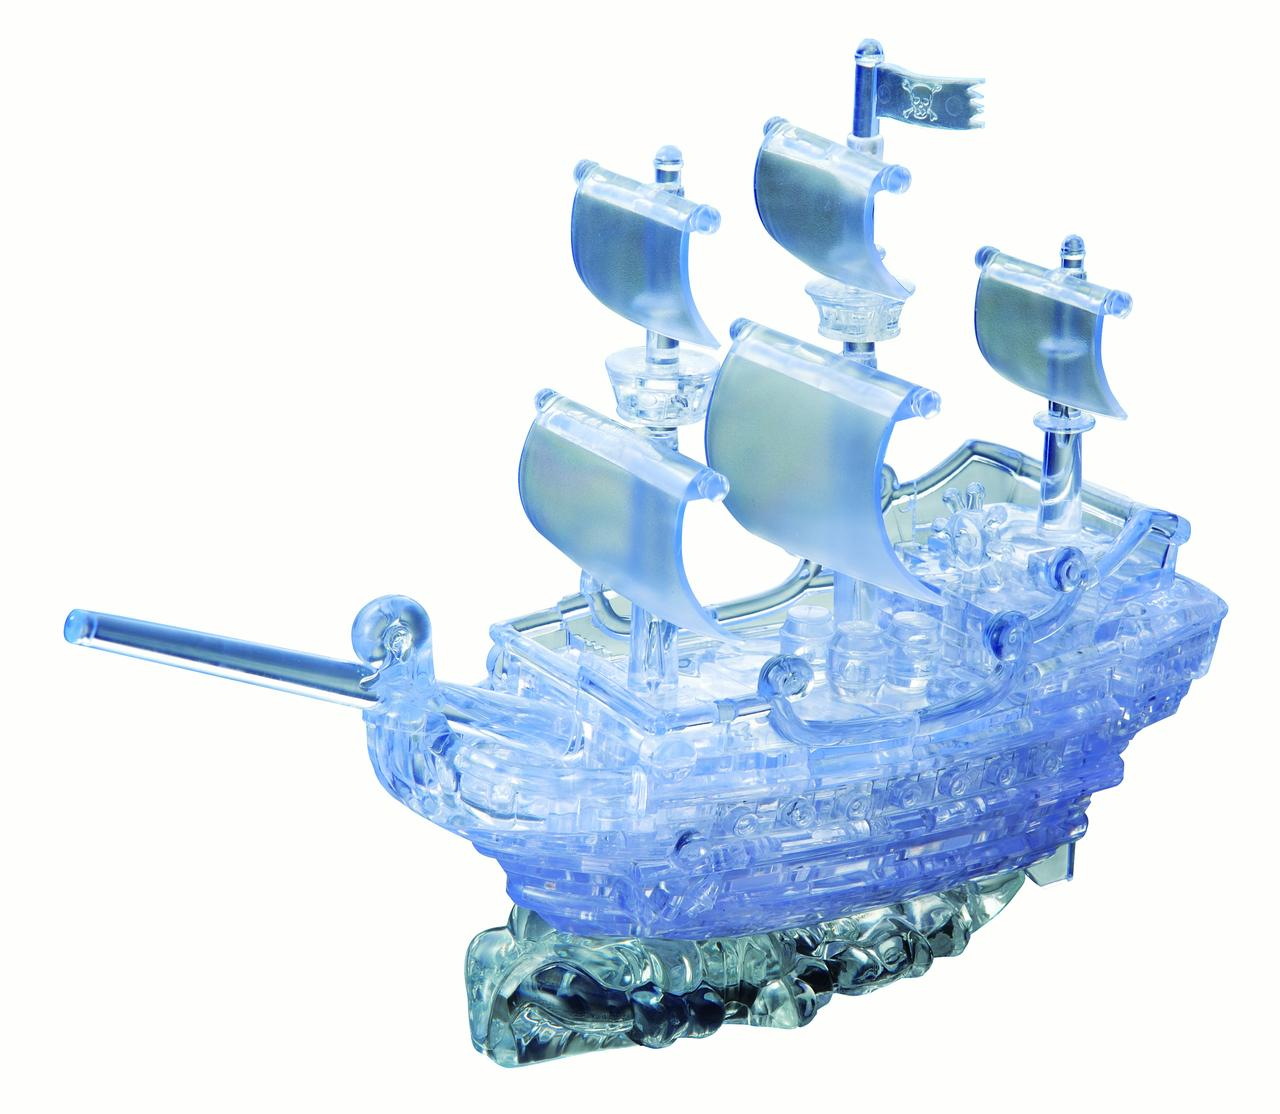 Deluxe 3D Crystal Puzzle Clear Pirate Ship by University Games